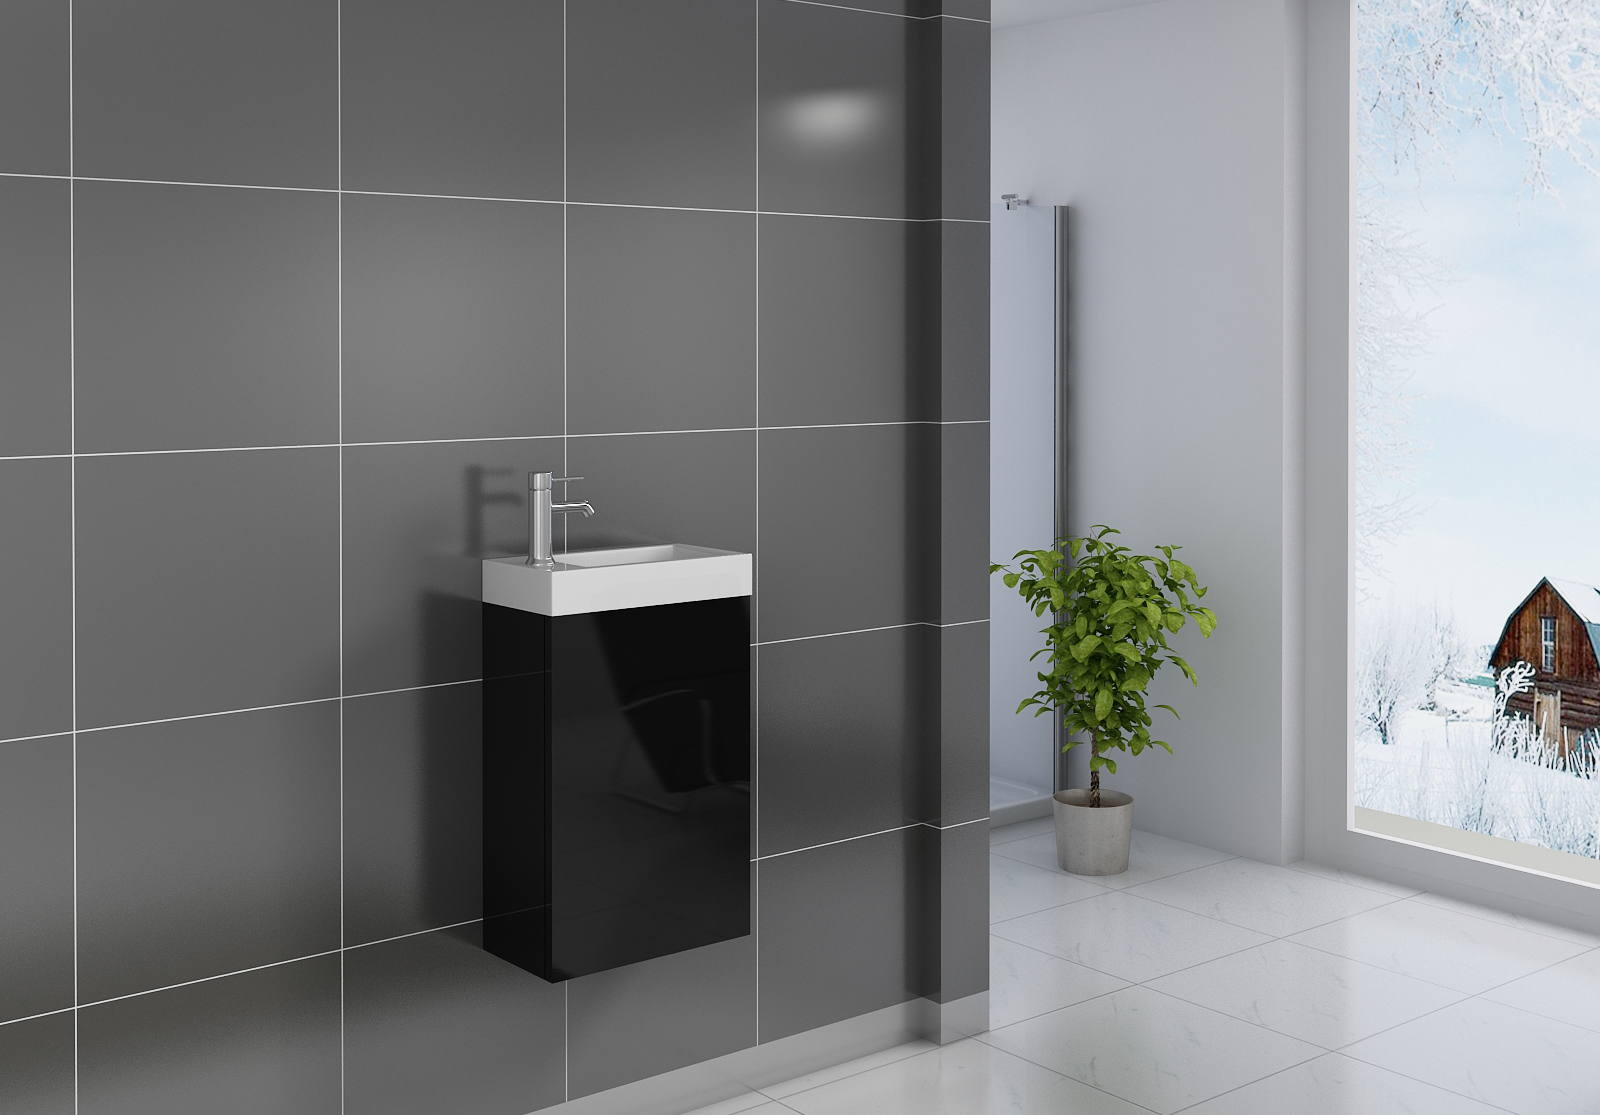 sam g ste wc waschbecken 40 x 22 cm schwarz vega. Black Bedroom Furniture Sets. Home Design Ideas